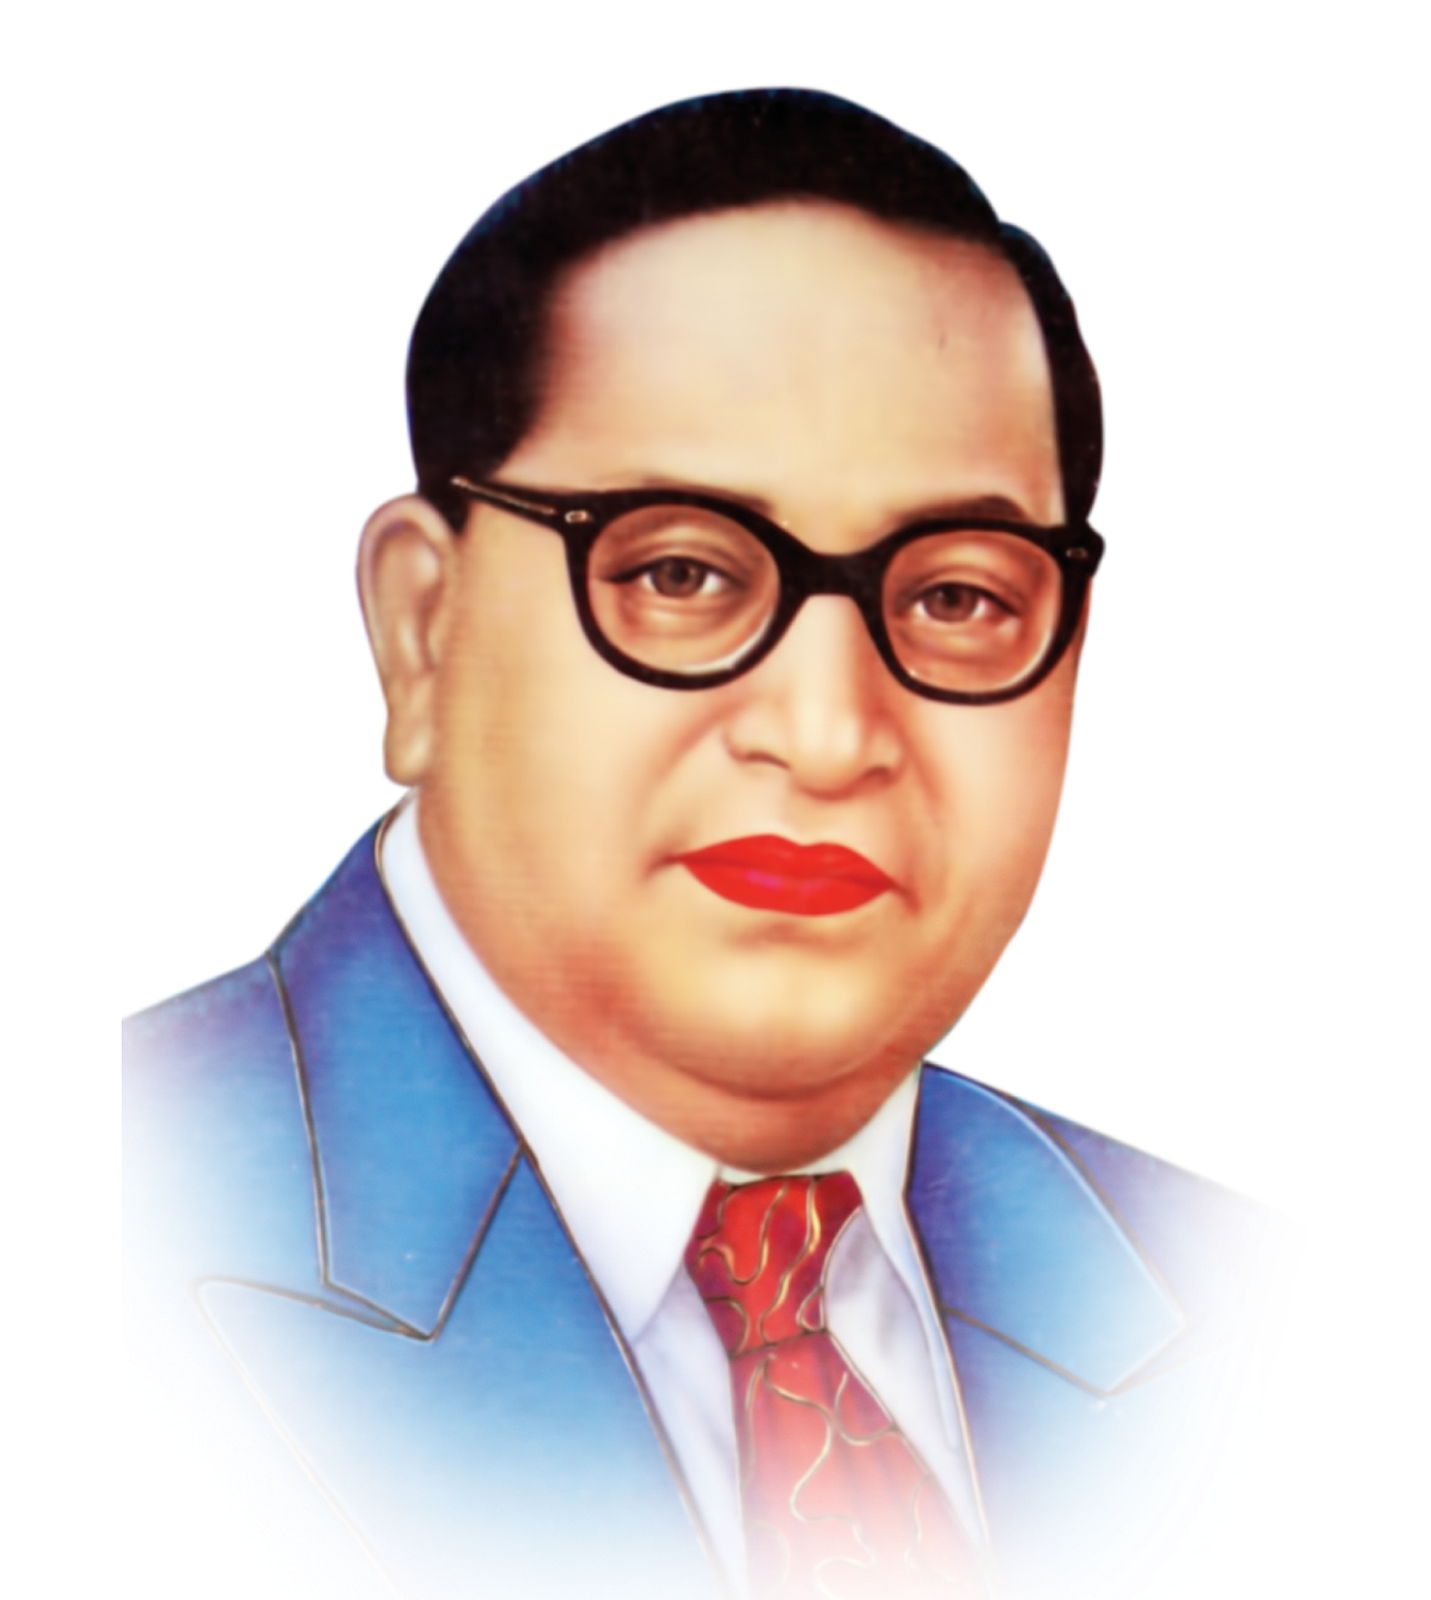 all about babasaheb ambedkar The latest tweets from babasaheb ambedkar (@babasahebambed1) my final words of advice to you are educate, agitate and organize have faith in yourself what is remarkable about hindu society is that stratification has divine sanction god himself has declared that men are unequal.